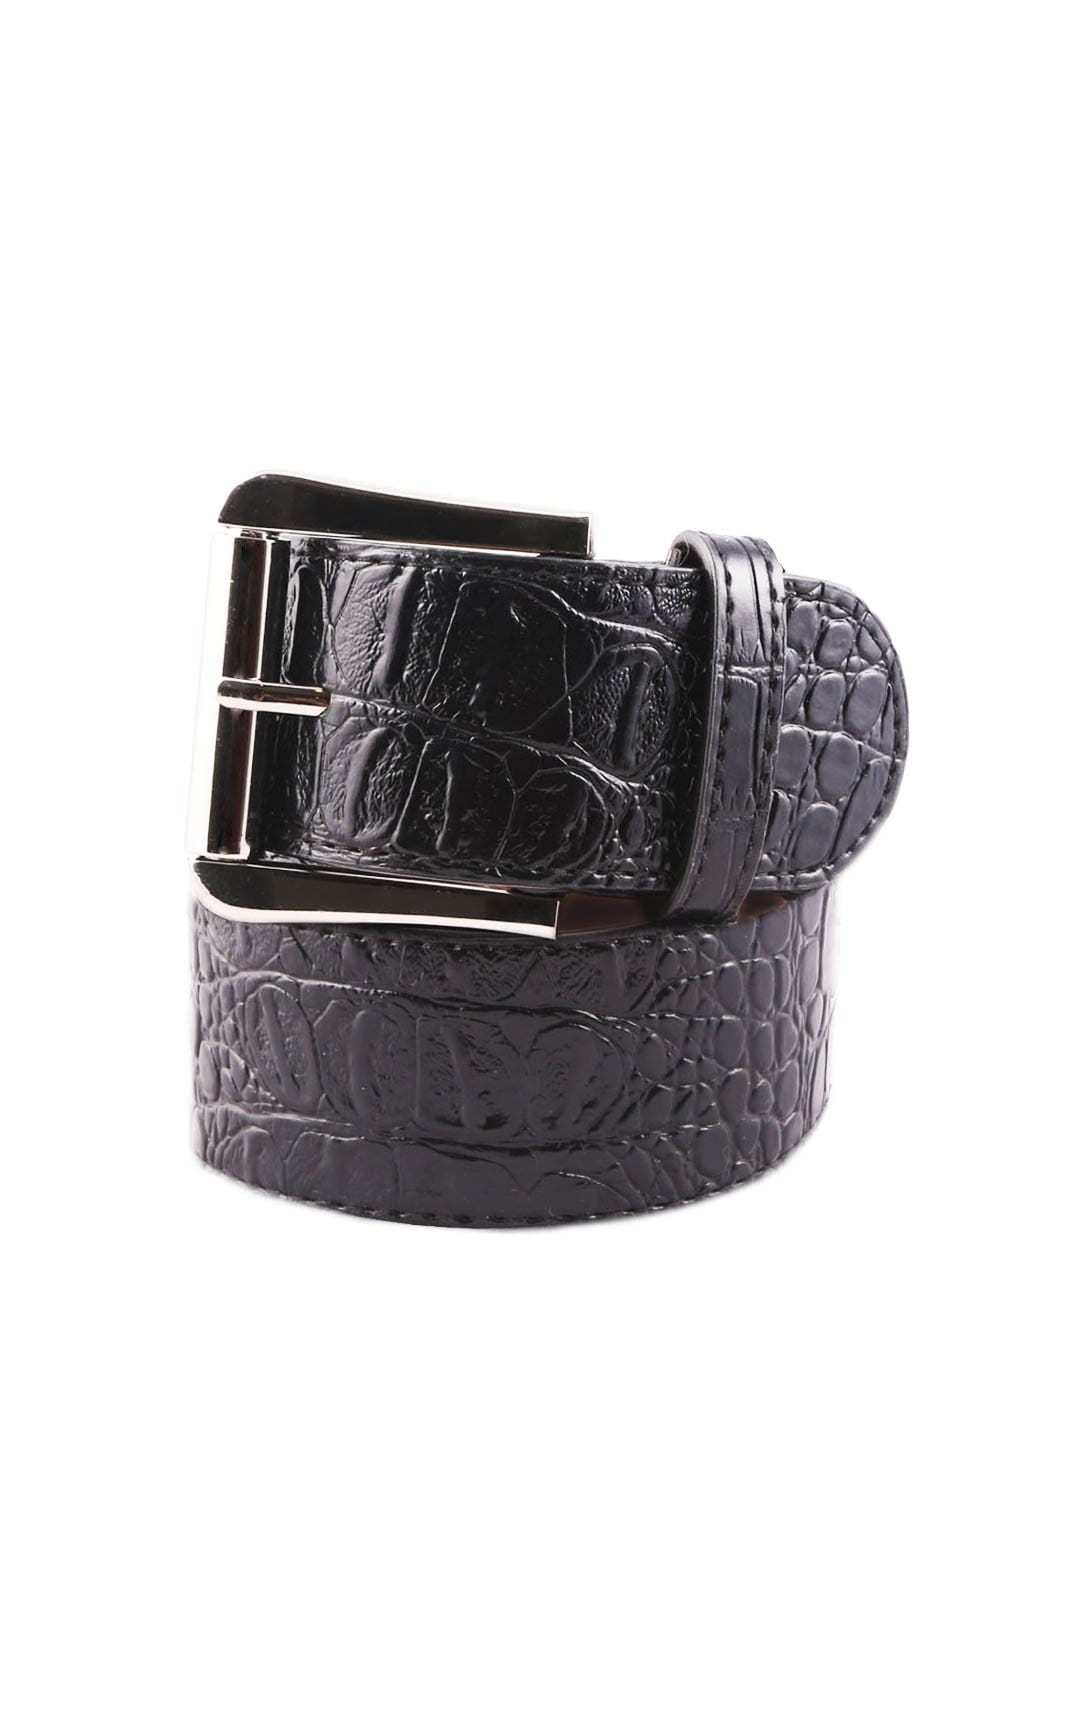 GhoDho Belt Medium Cruelty Free GhoDho Belt - Black equestrian team apparel online tack store mobile tack store custom farm apparel custom show stable clothing equestrian lifestyle horse show clothing riding clothes horses equestrian tack store